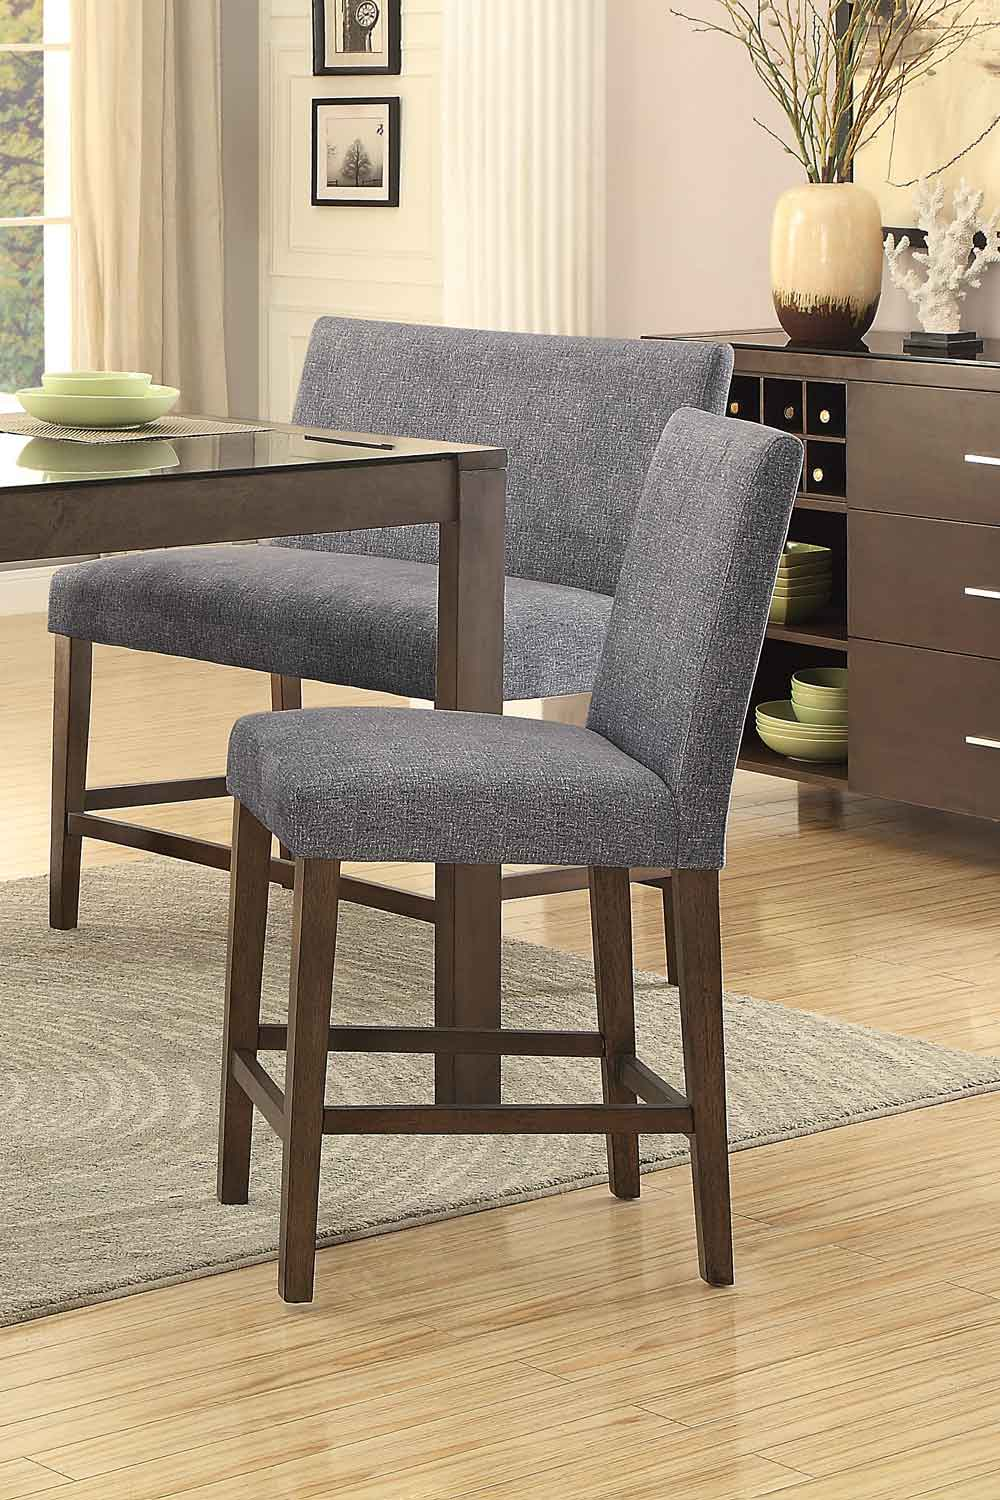 Homelegance Fielding Counter Height Chair - Brown